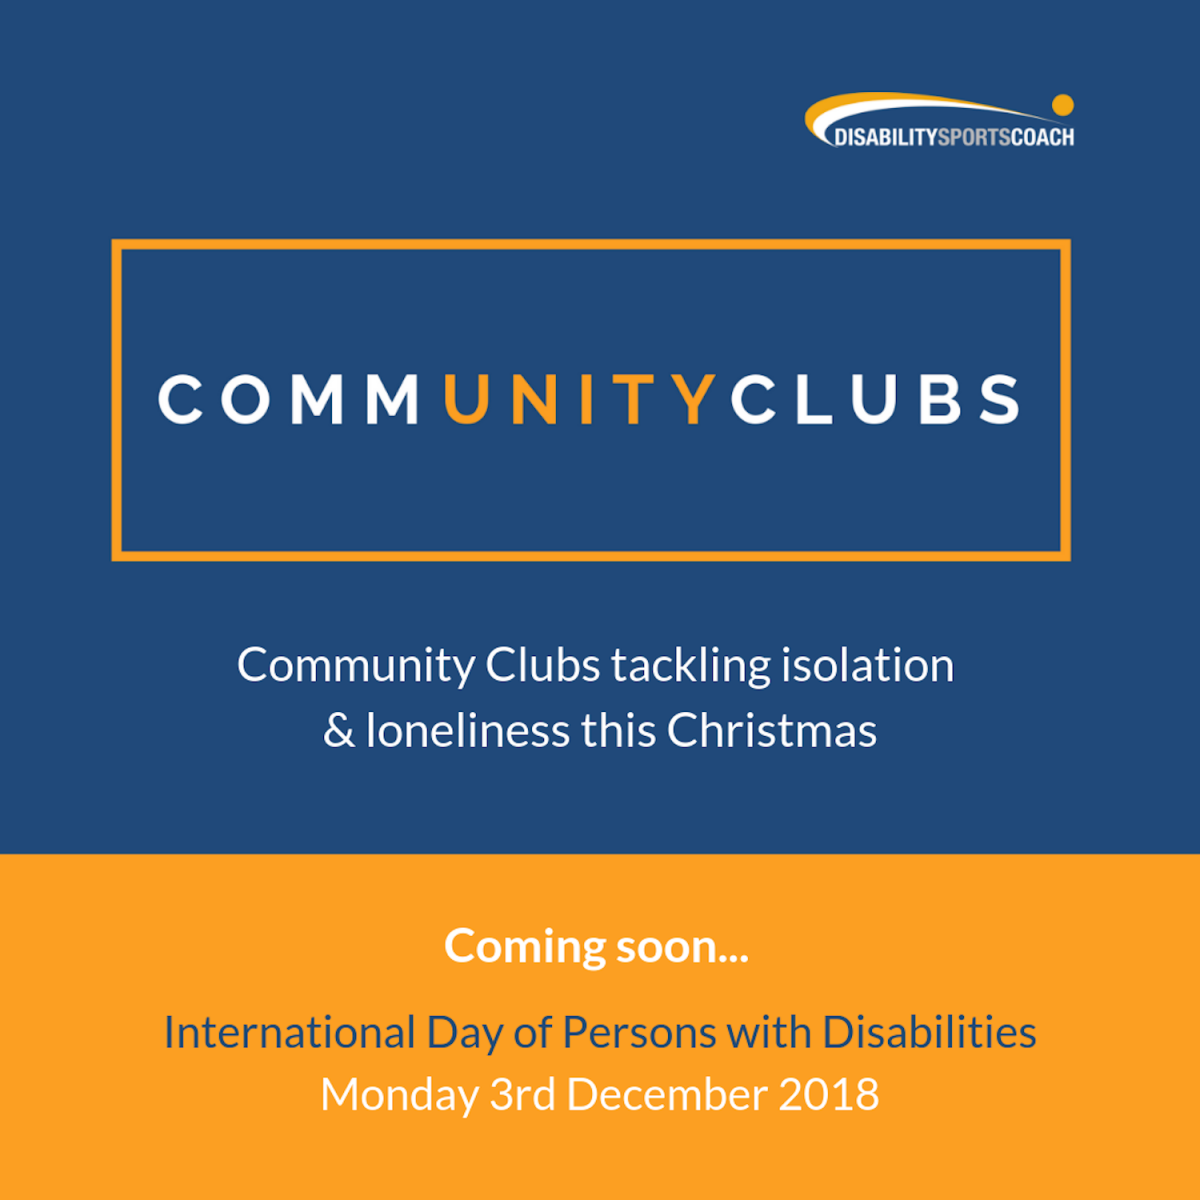 Unity - Community Clubs tackling isolation and loneliness - International Day of Persons with Disabilities